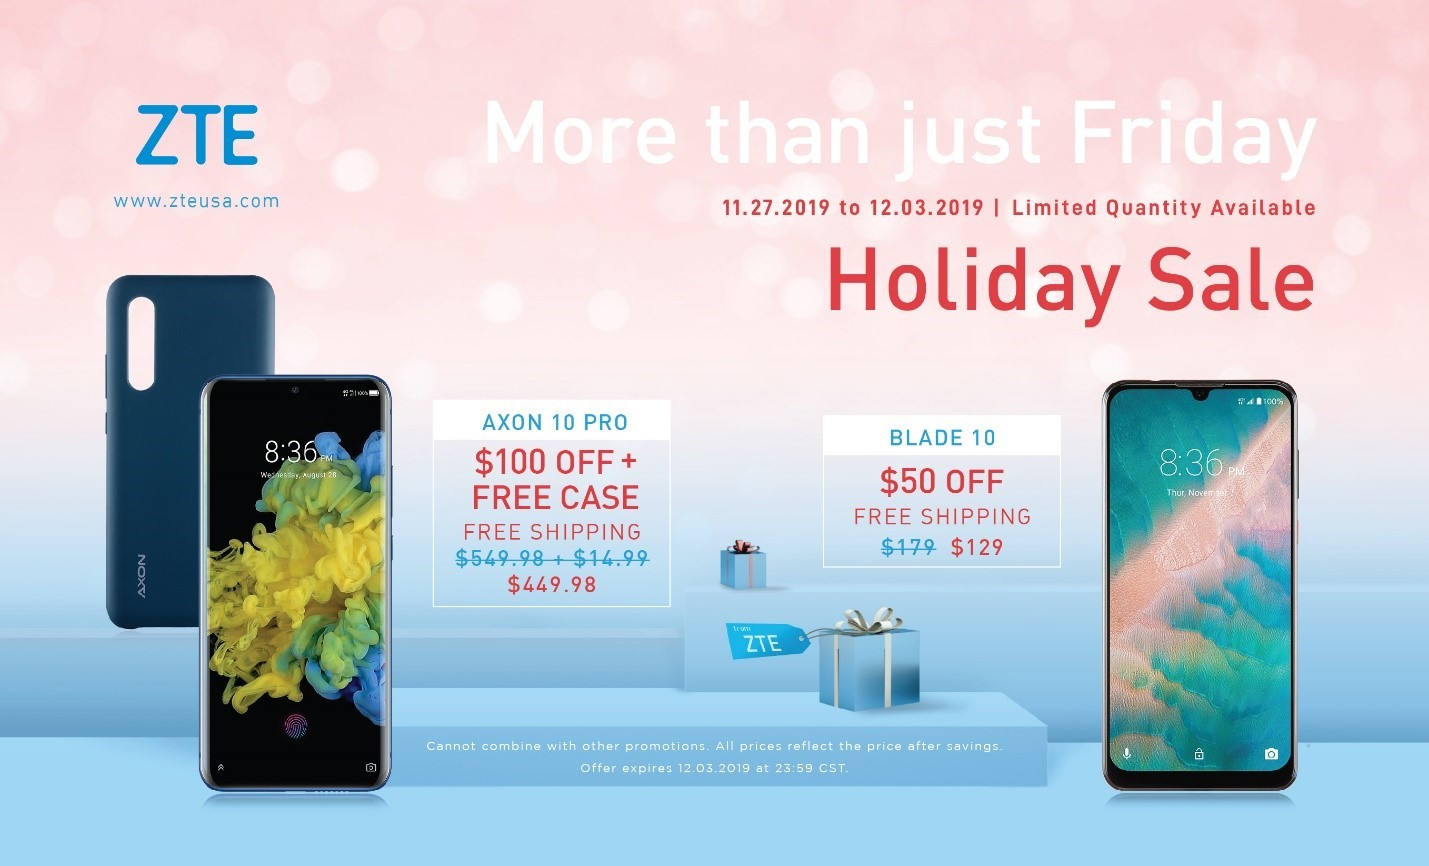 Zte Black Friday Deals Extend To Cyber Monday For Its Most